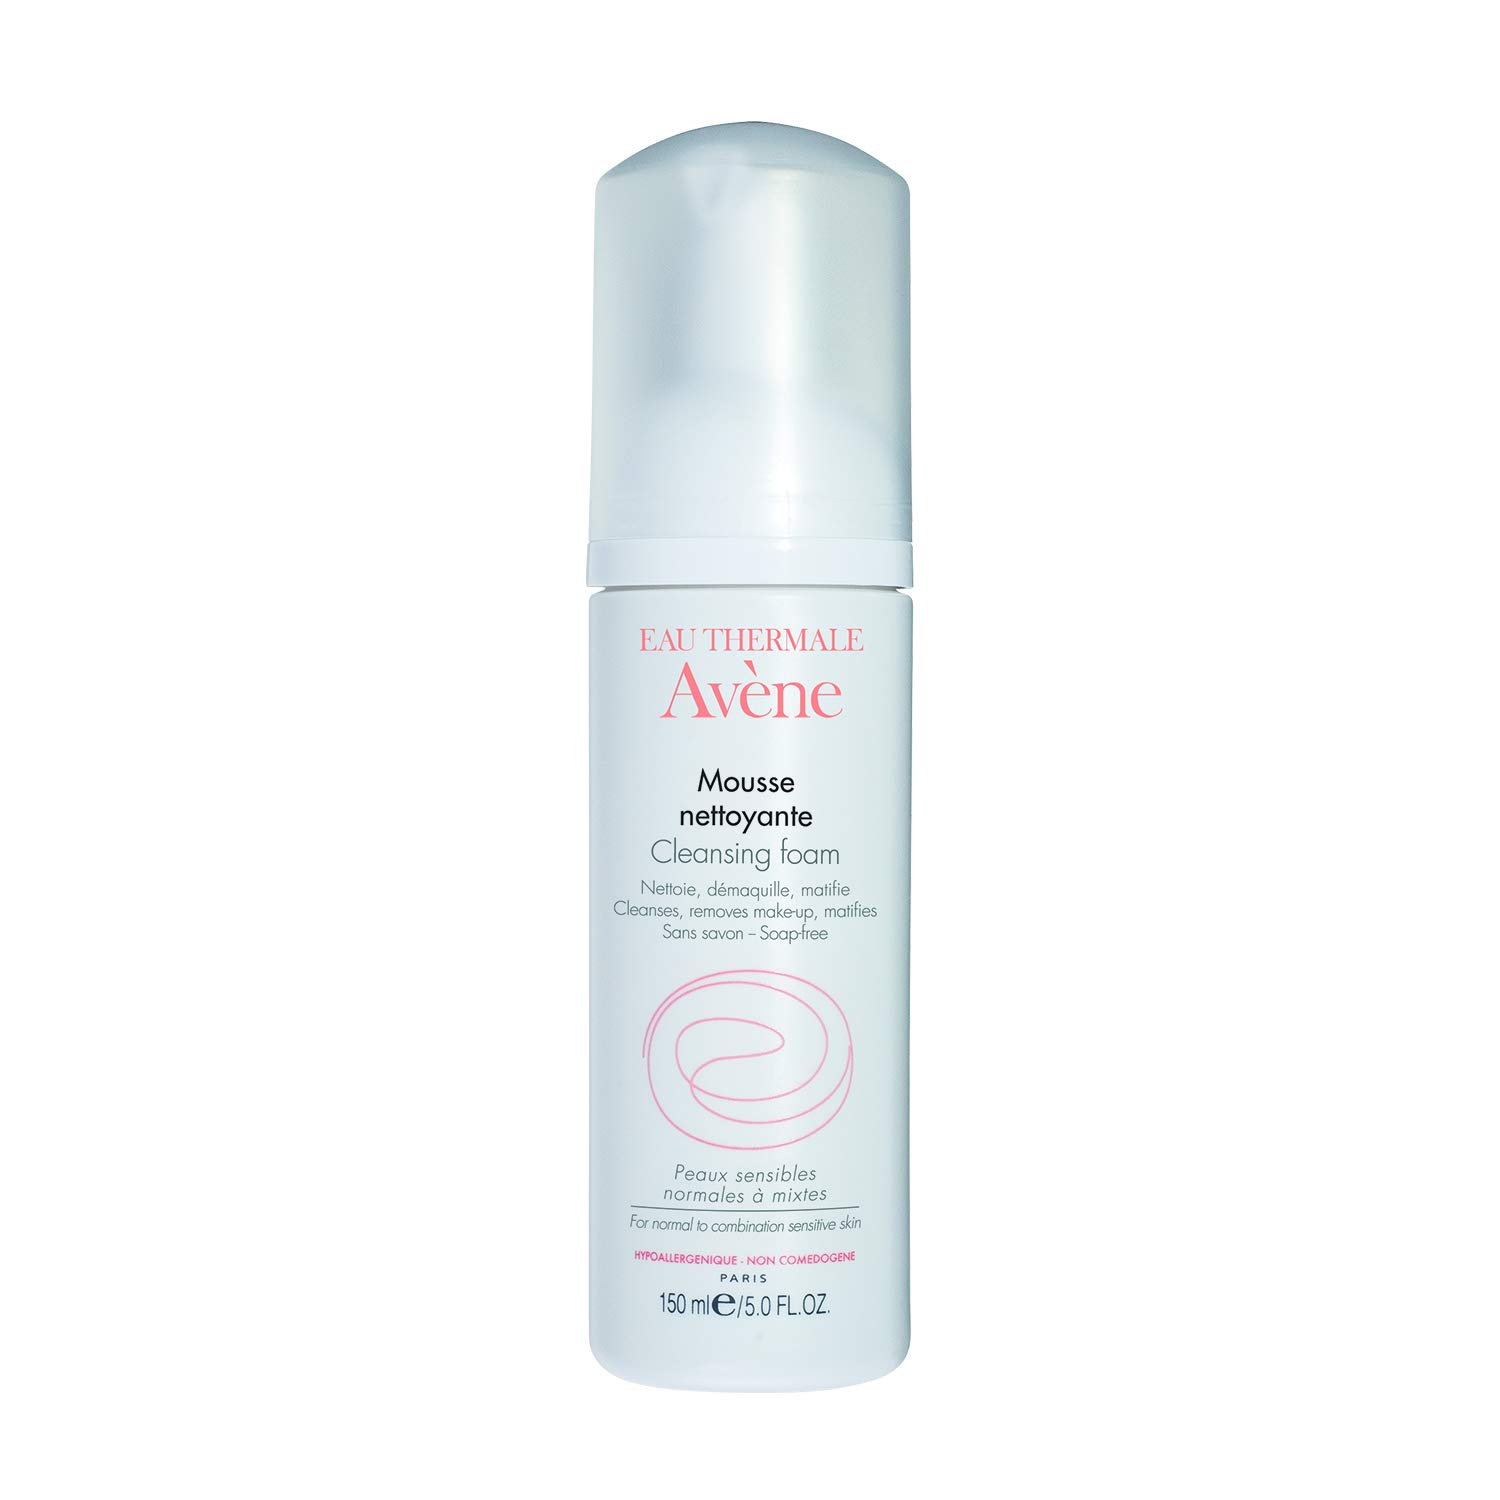 Avene Mousse Nettoyante Cleansing Foam